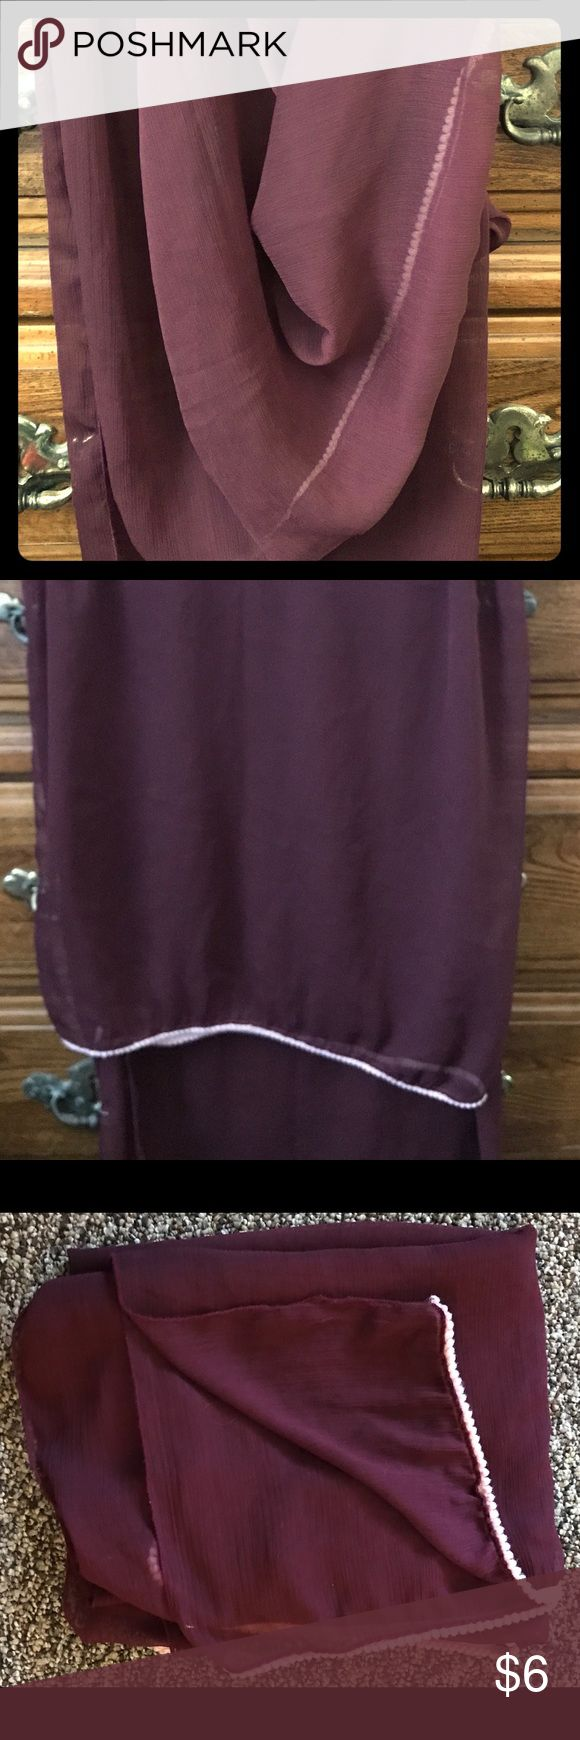 Sarong swimsuit cover-up Purple lightweight wrap around swimsuit cover up. Large enough to be work as a skirt, halter top, strapless dress, or anything else you can think of. Never worn. Swim Sarongs